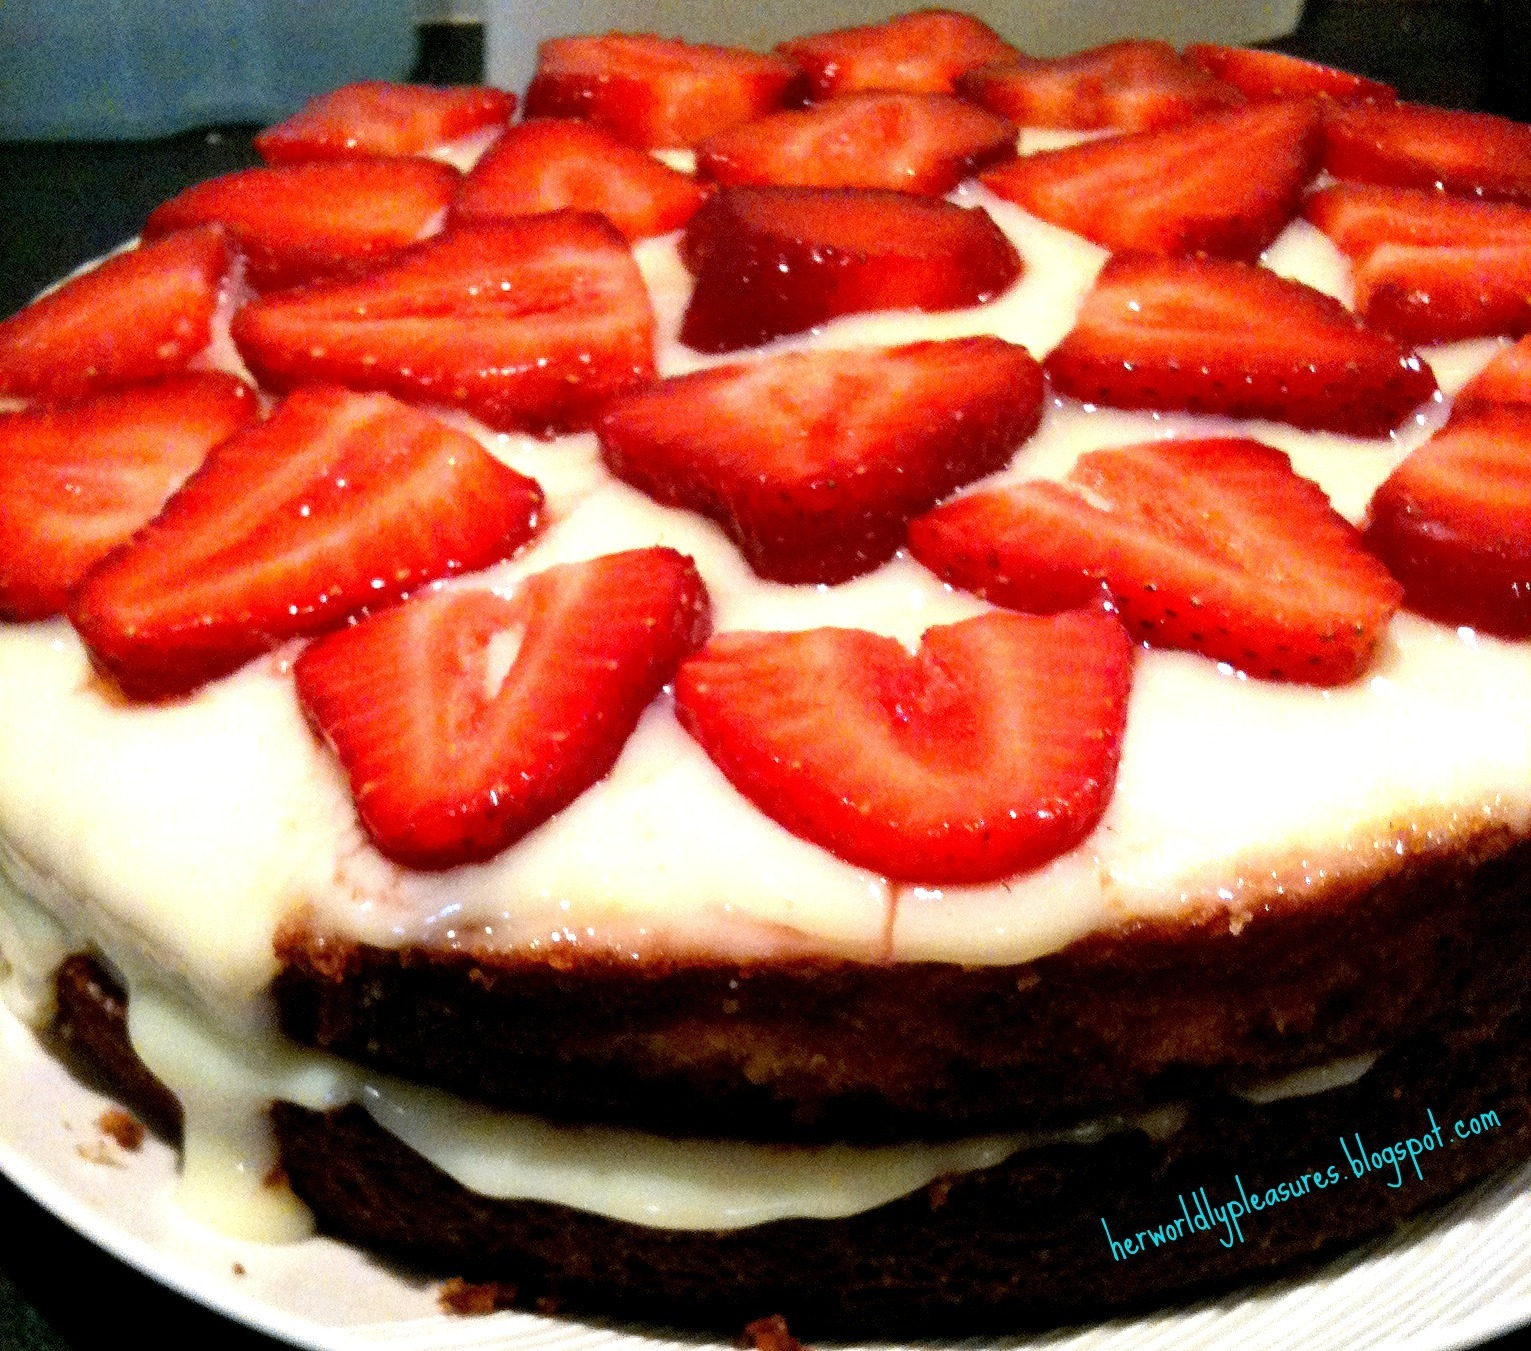 Strawberry Sponge Cake with Vanilla Custard